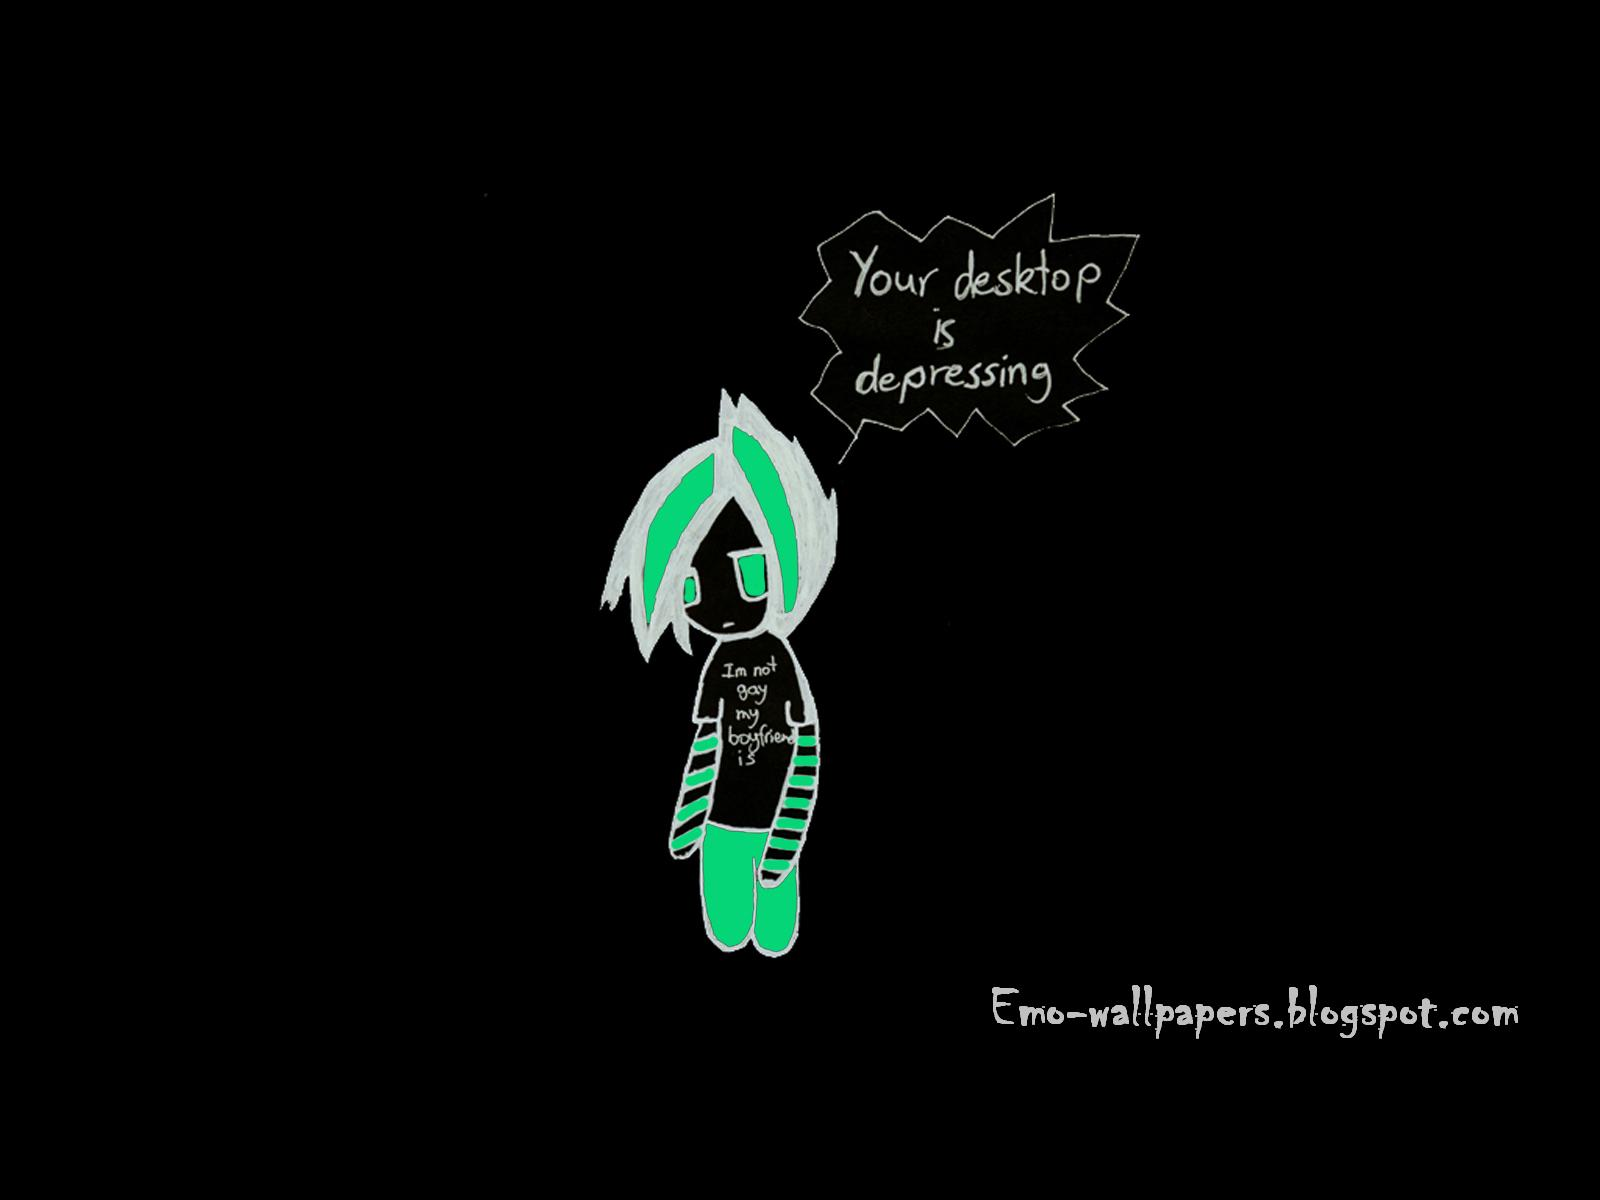 Emo Wallpapers For Facebook Emo wallpapers 1600x1200